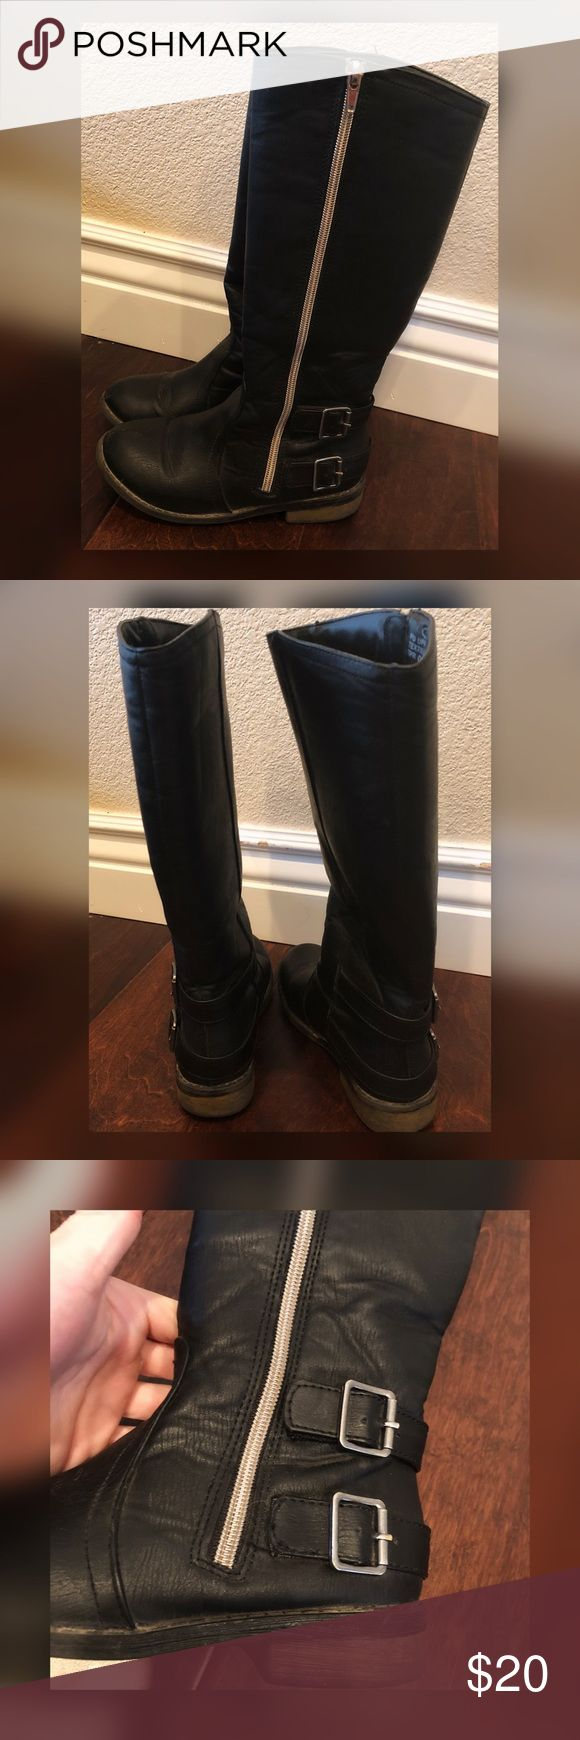 Steve Madden Girls Boots Size 1 Good condition! Steve Madden Boots for Girl Size 1.  Zip up sides and buckled on side. Small scuff on right boot tie but not very noticeable :) These were hardly worn my daughter outgrew too fast. Steve Madden Shoes Boots